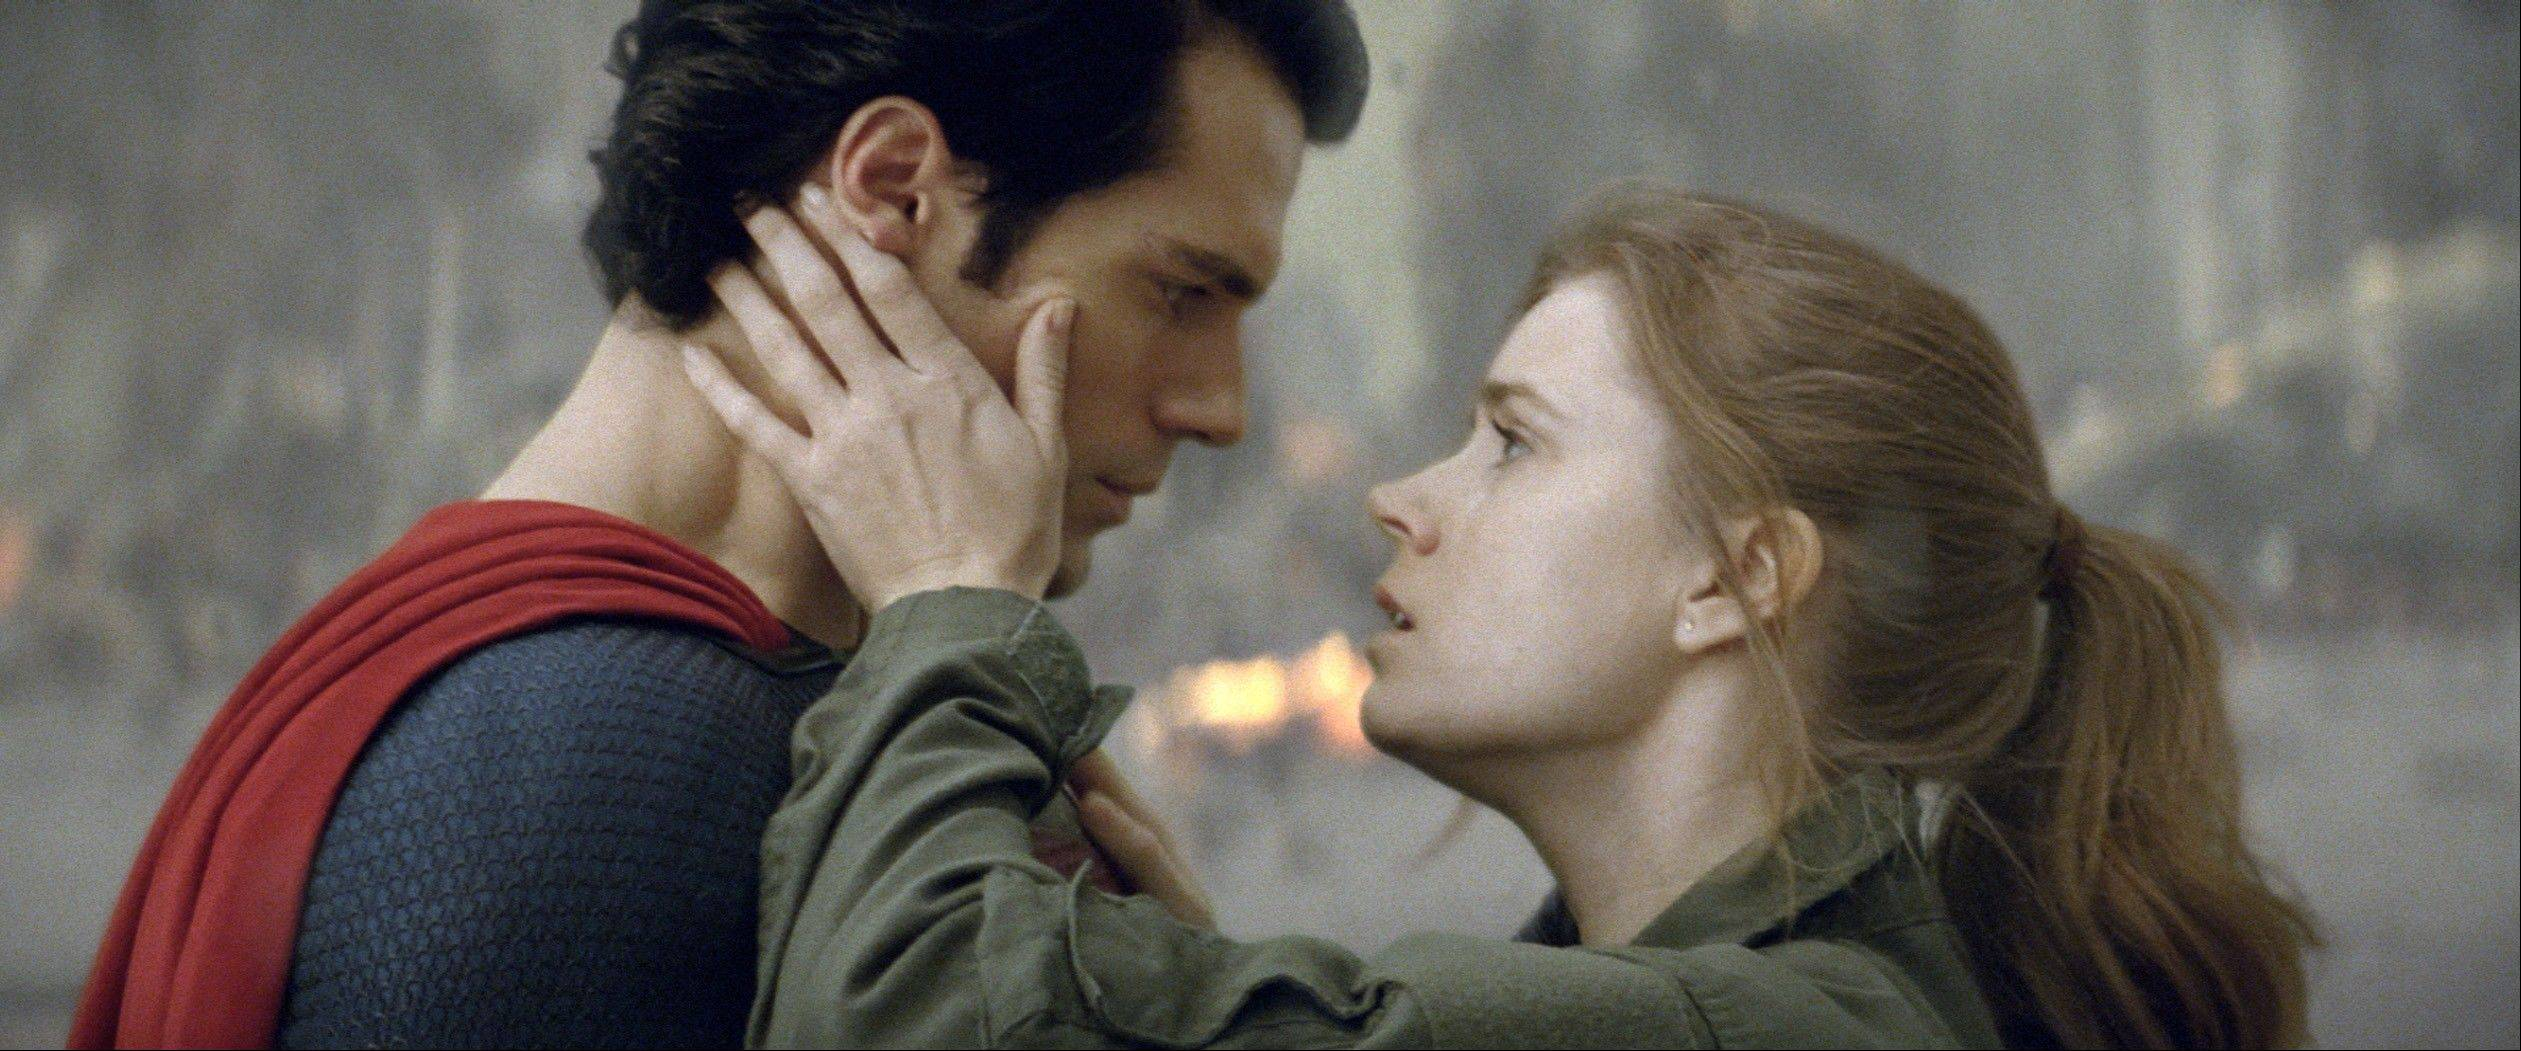 "Superman (Henry Cavil) shares an awkward romantic moment with Lois Lane (Amy Adams) in ""Man of Steel."""